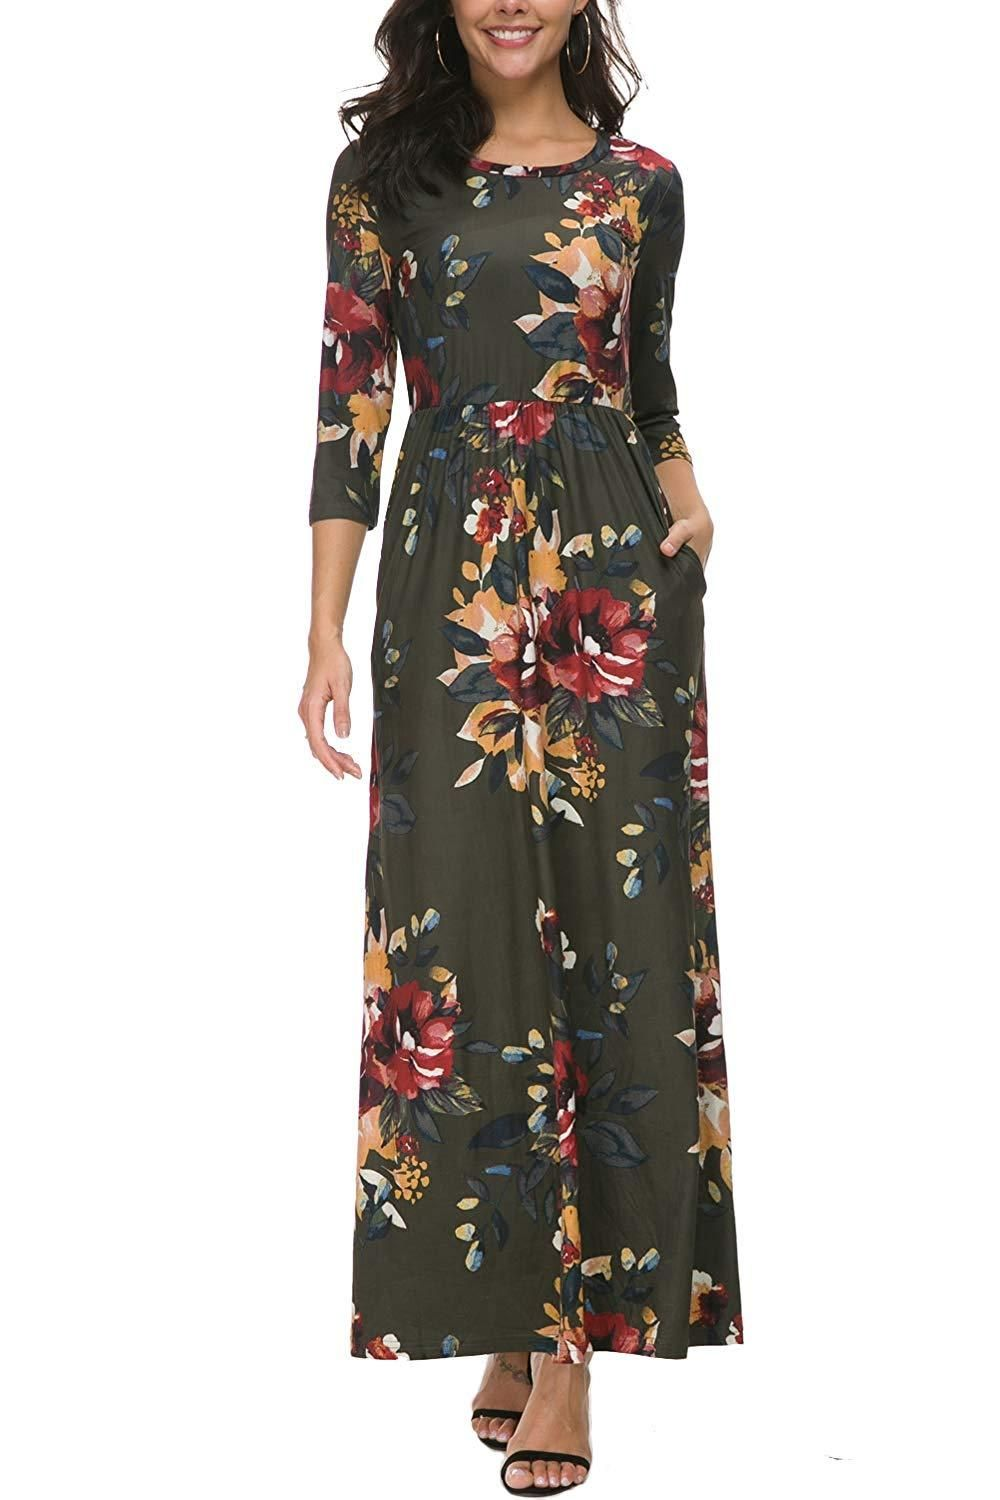 Zattcas Women S Floral Maxi Dress 3 4 Sleeve Casual Long Printed Maxi Dresses With Pockets Womens Floral Maxi Dress Maxi Dress Floral Maxi Dress [ 1500 x 1000 Pixel ]